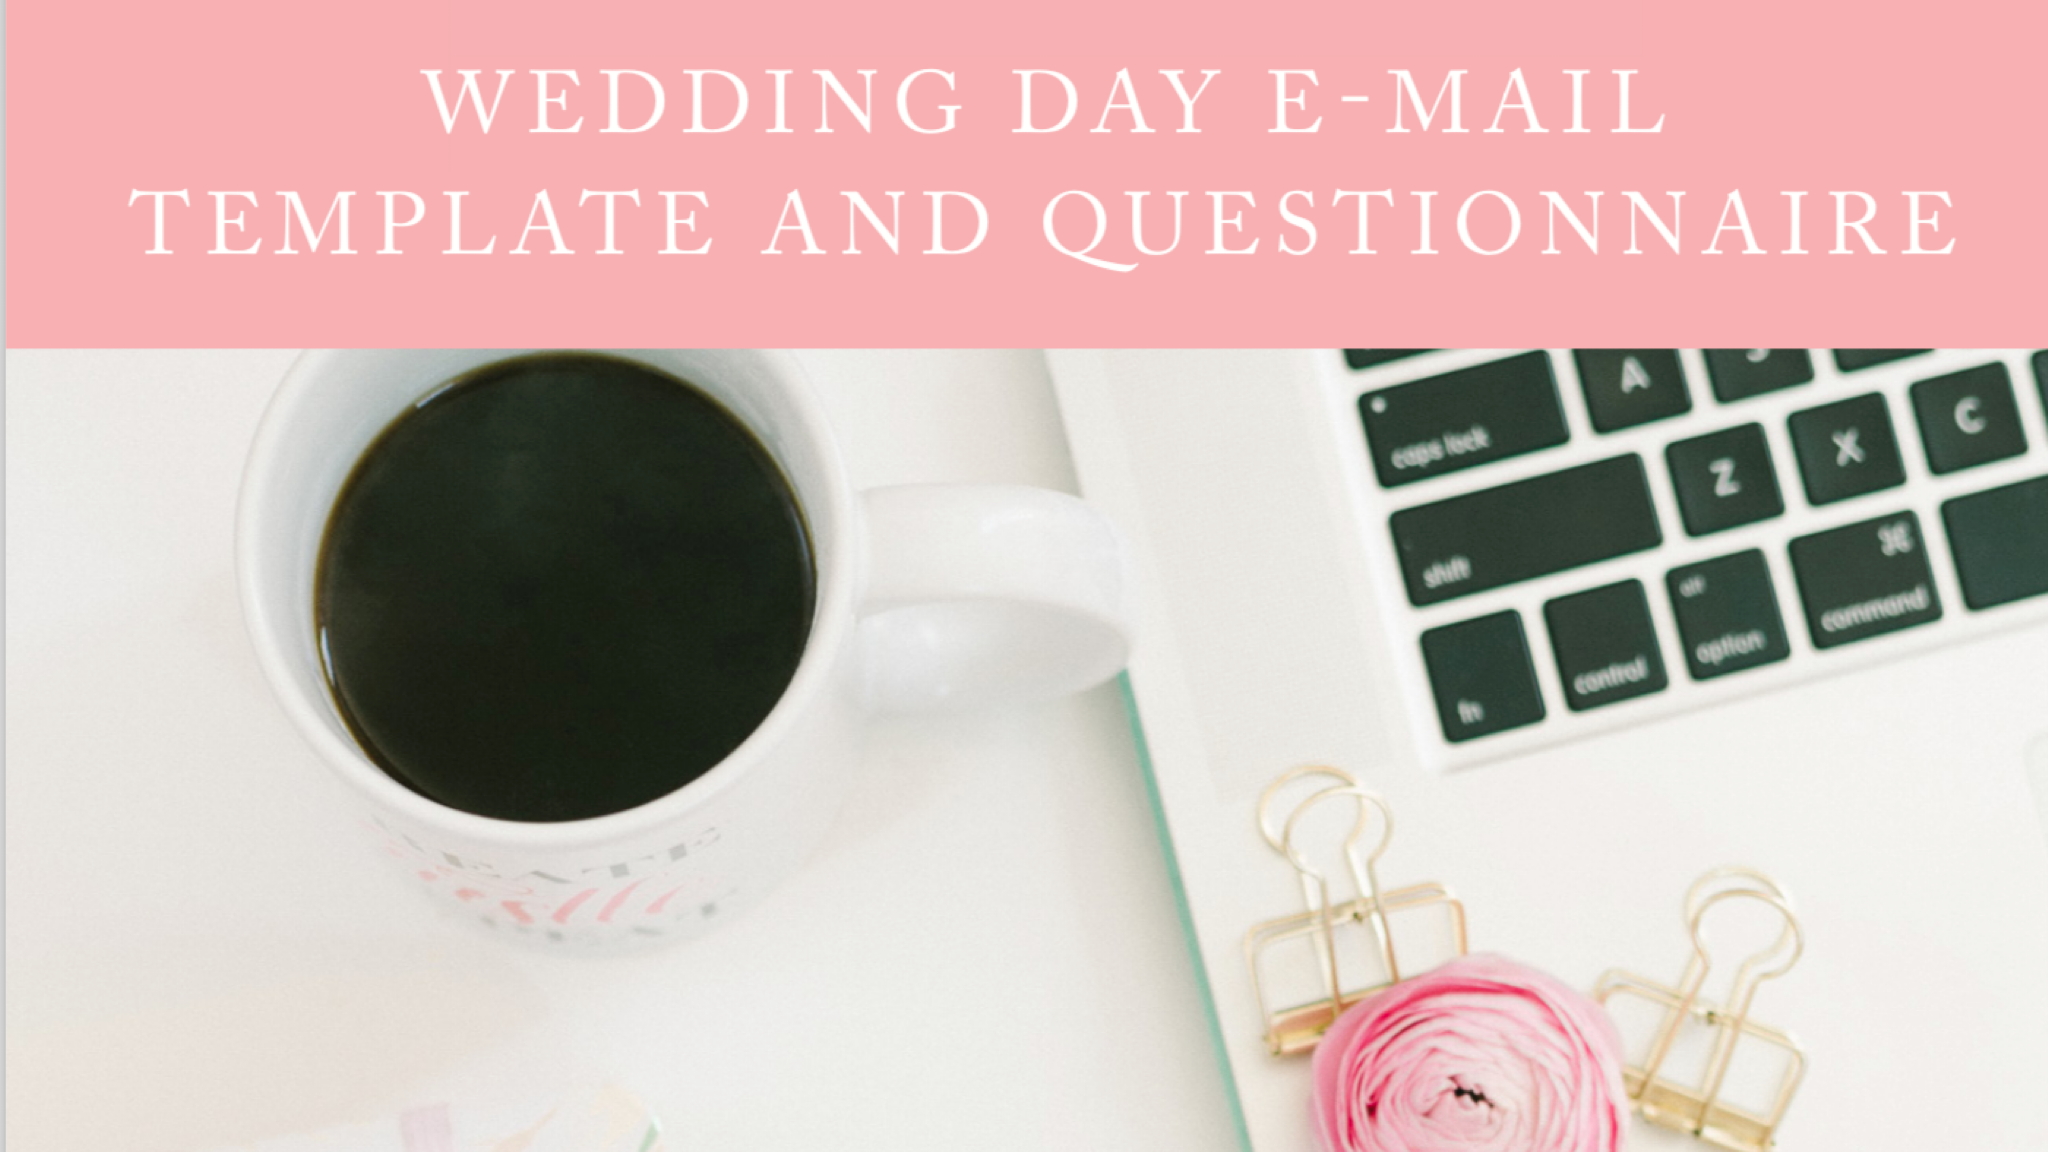 Questionnaire for Your Brides + Grooms